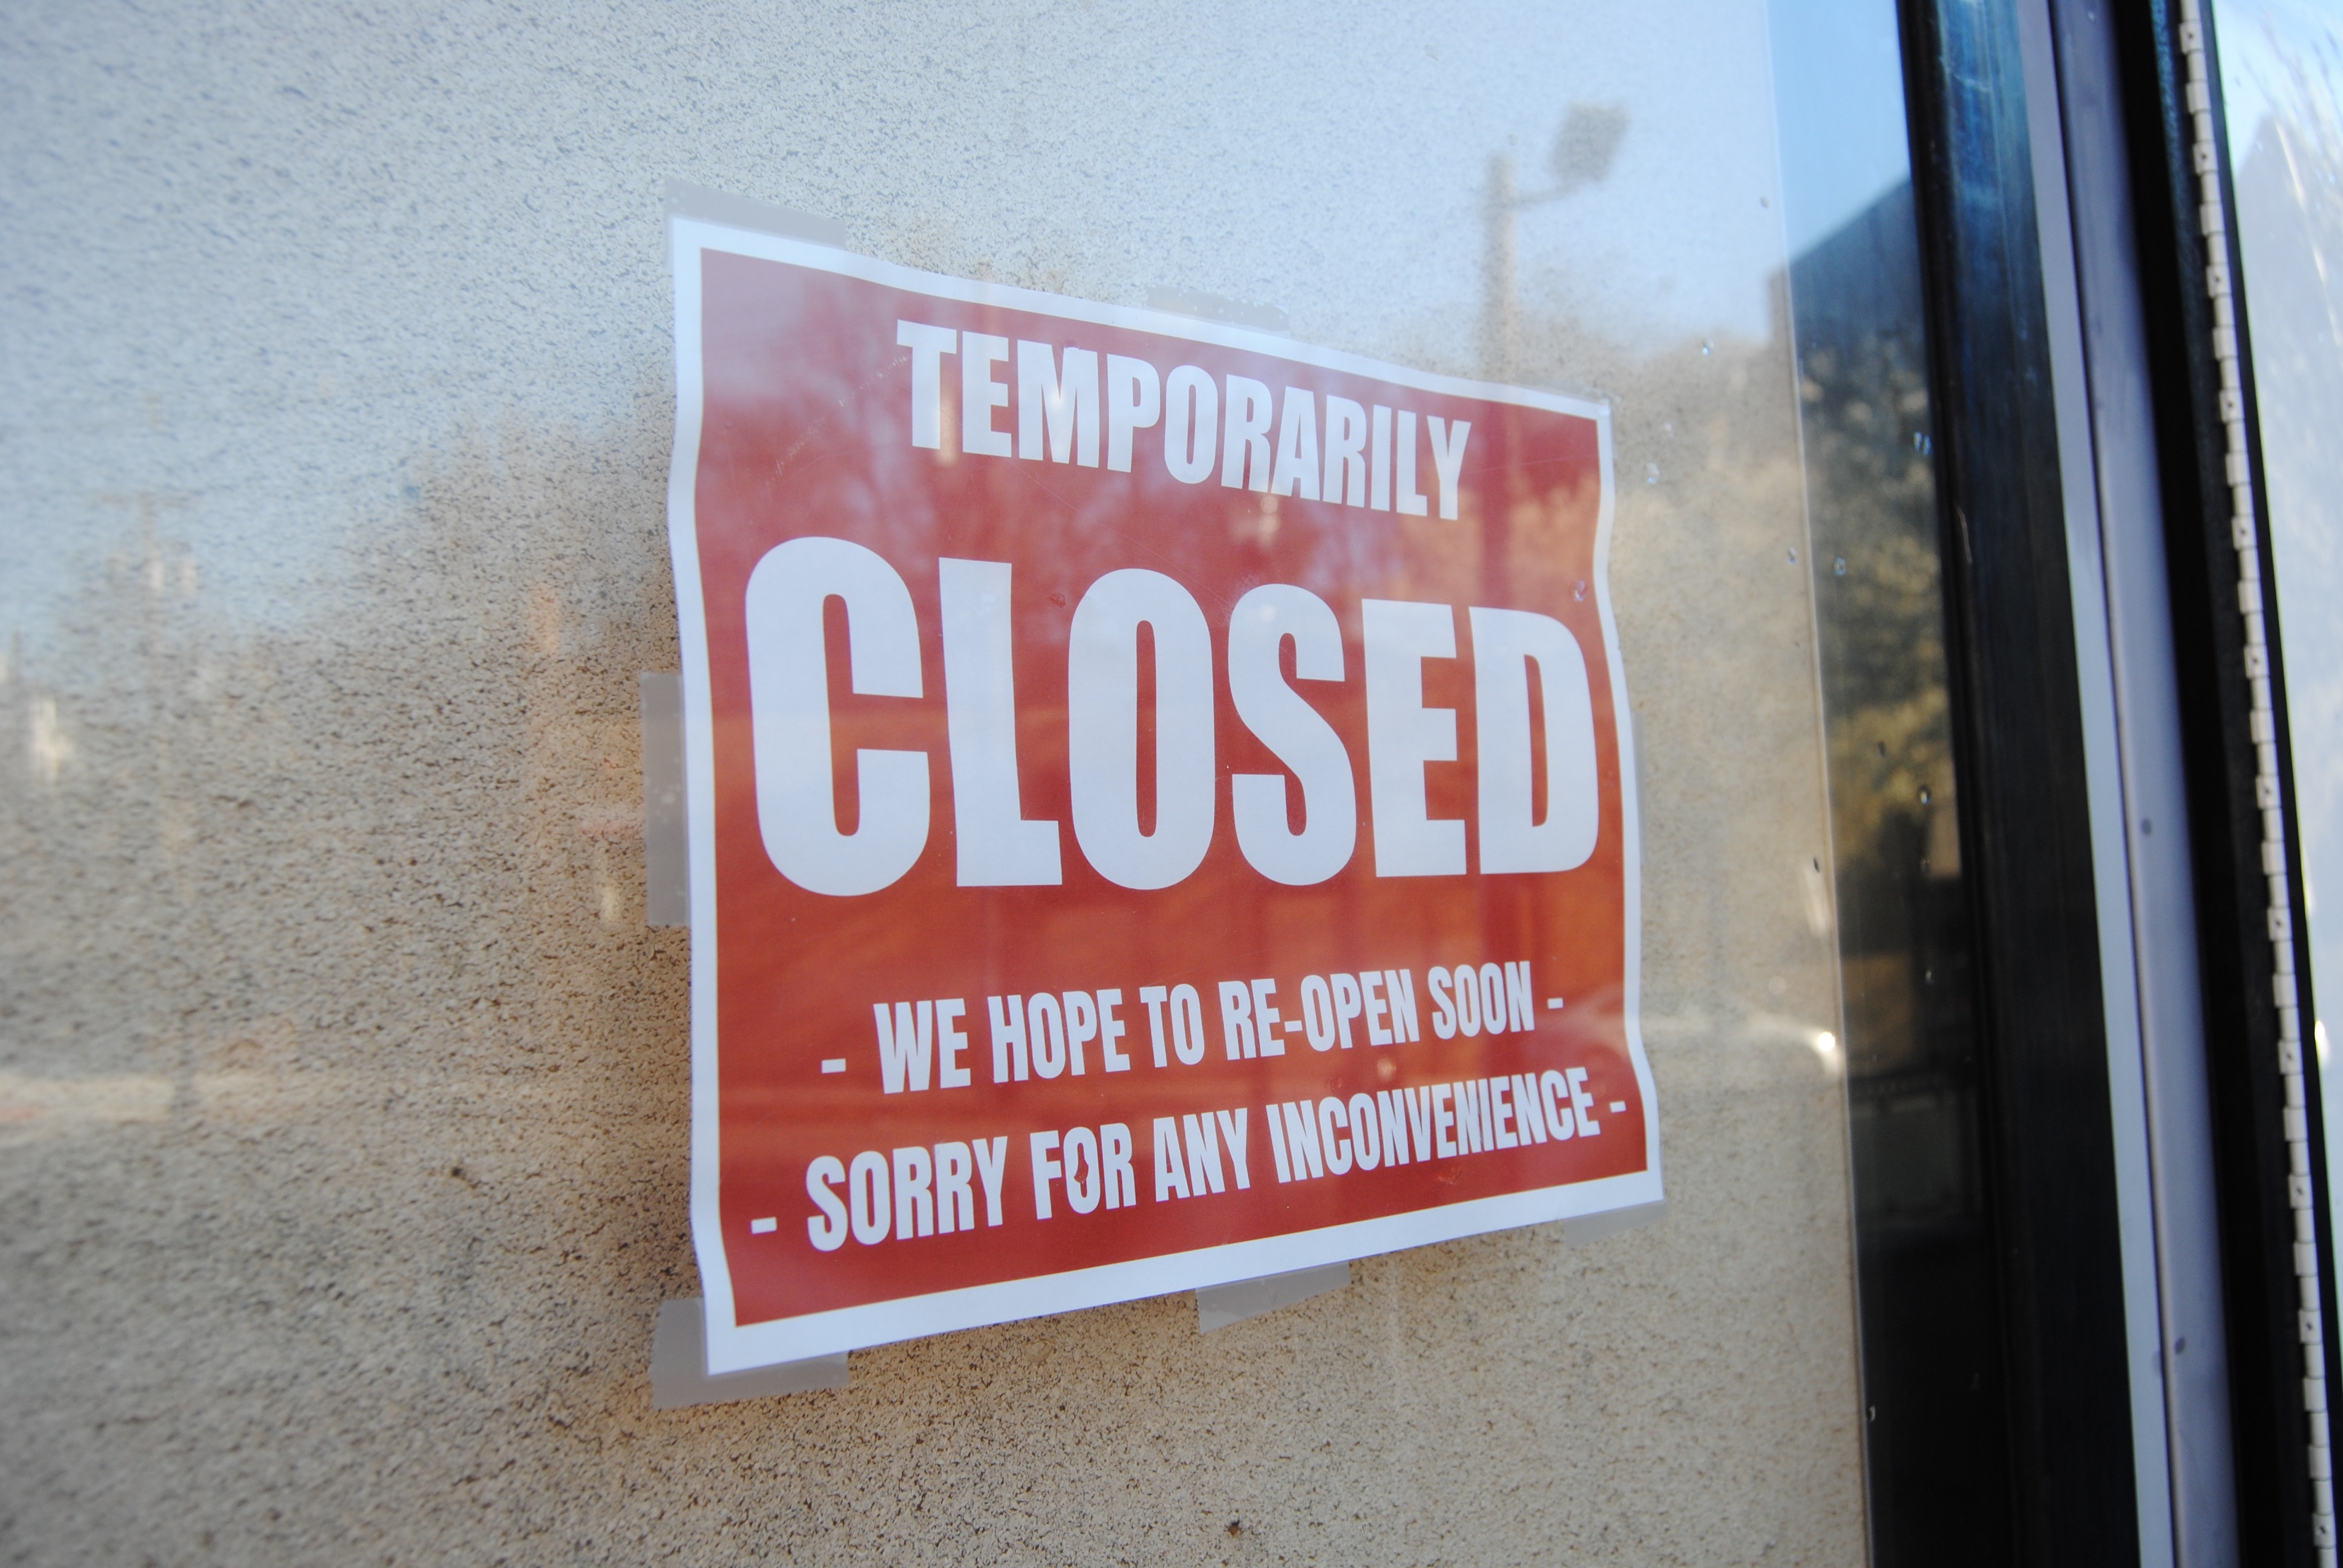 A red sign in a window states that the business is temporarily closed.